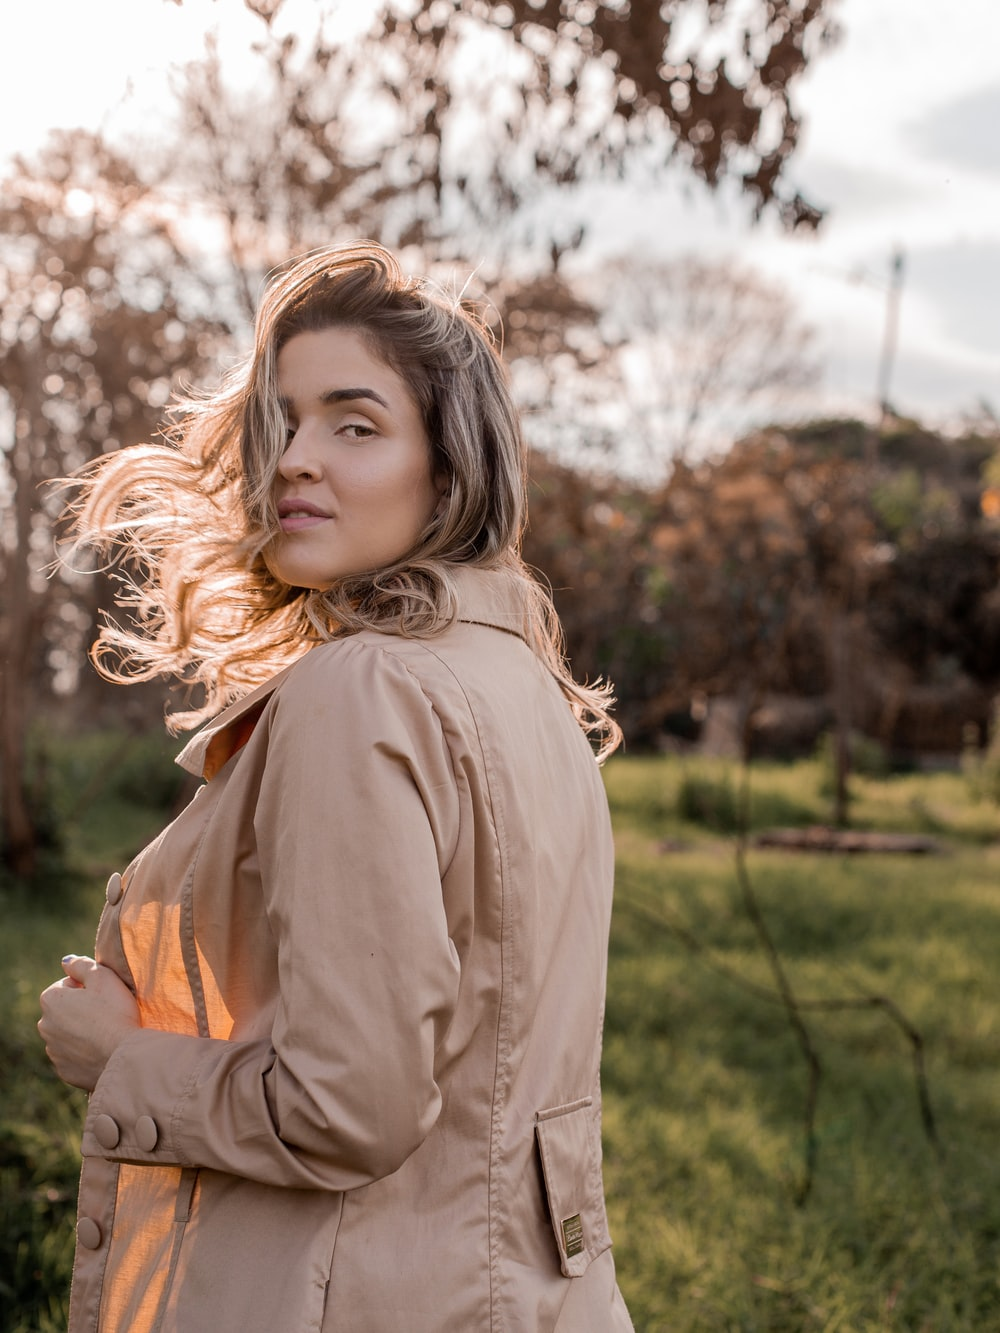 girl in brown coat standing on green grass field during daytime